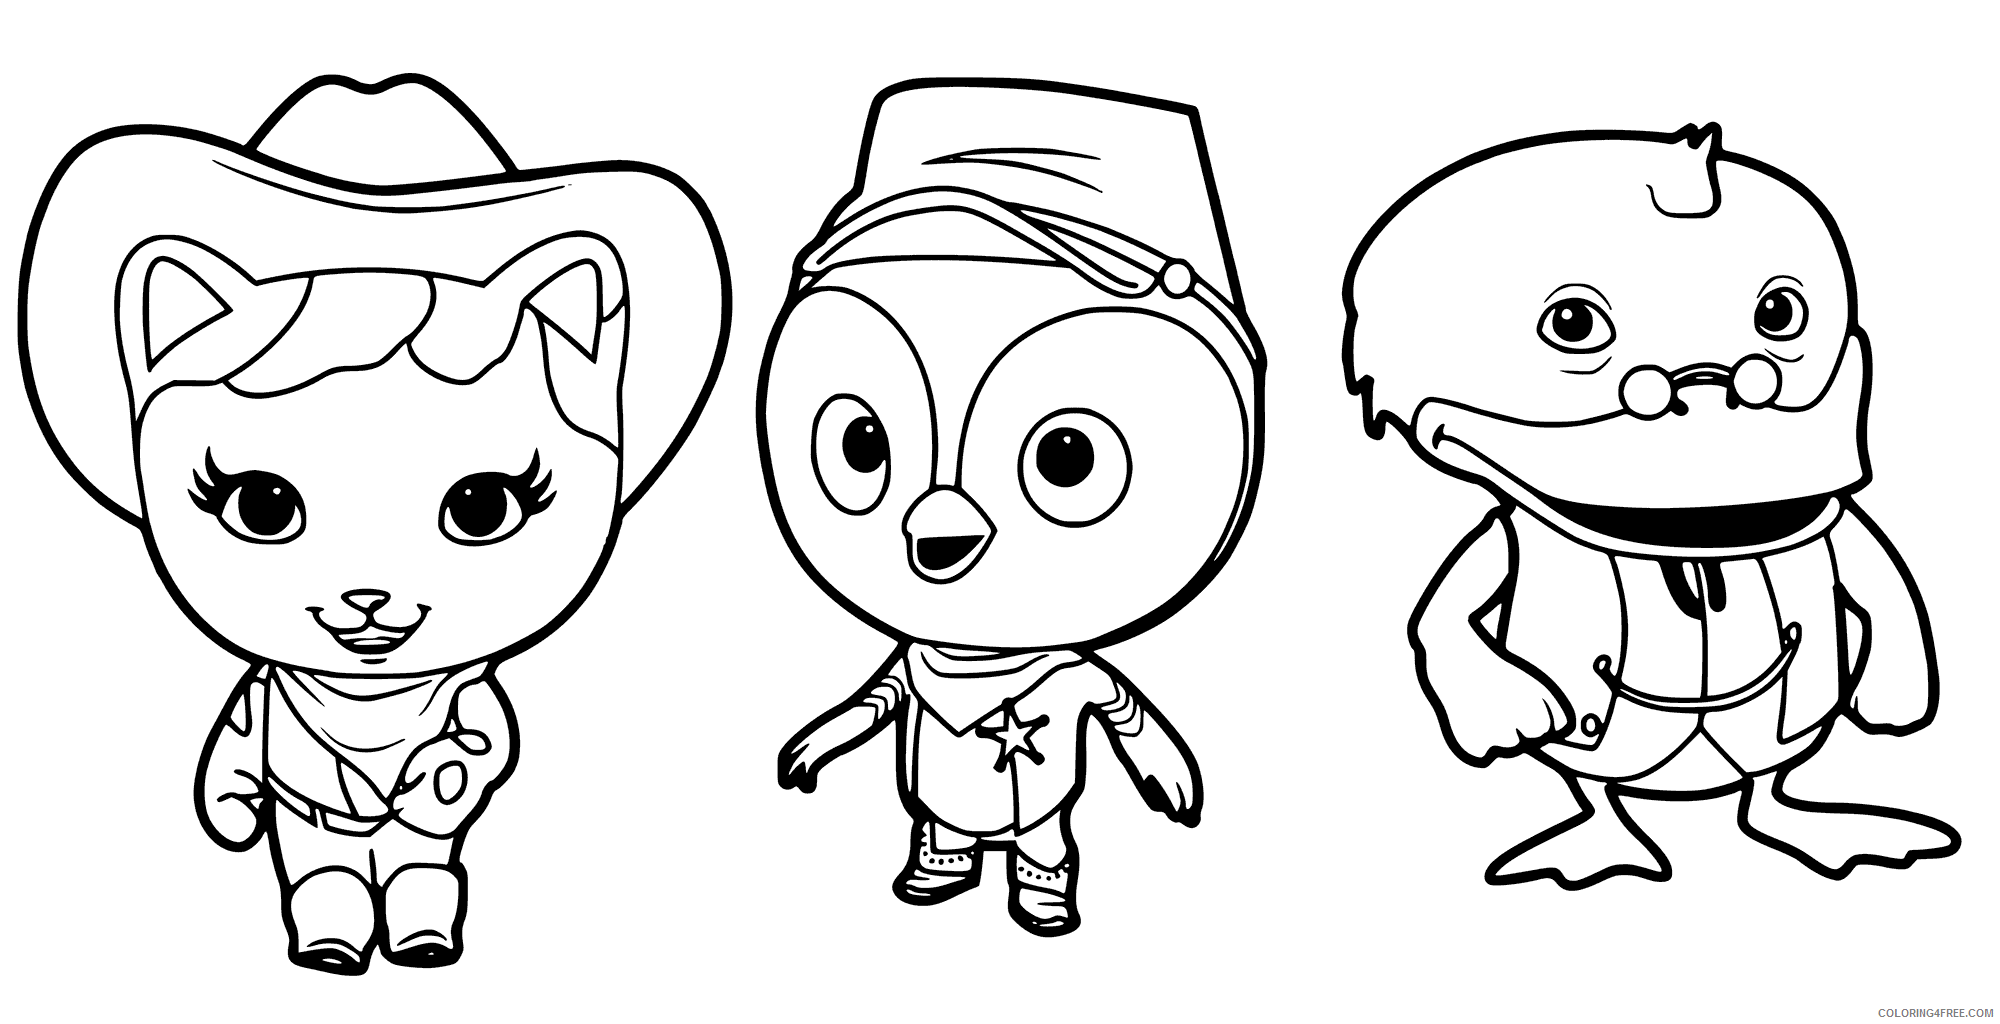 Sheriff Callie Coloring Pages TV Film Characters Printable 2020 07515 Coloring4free